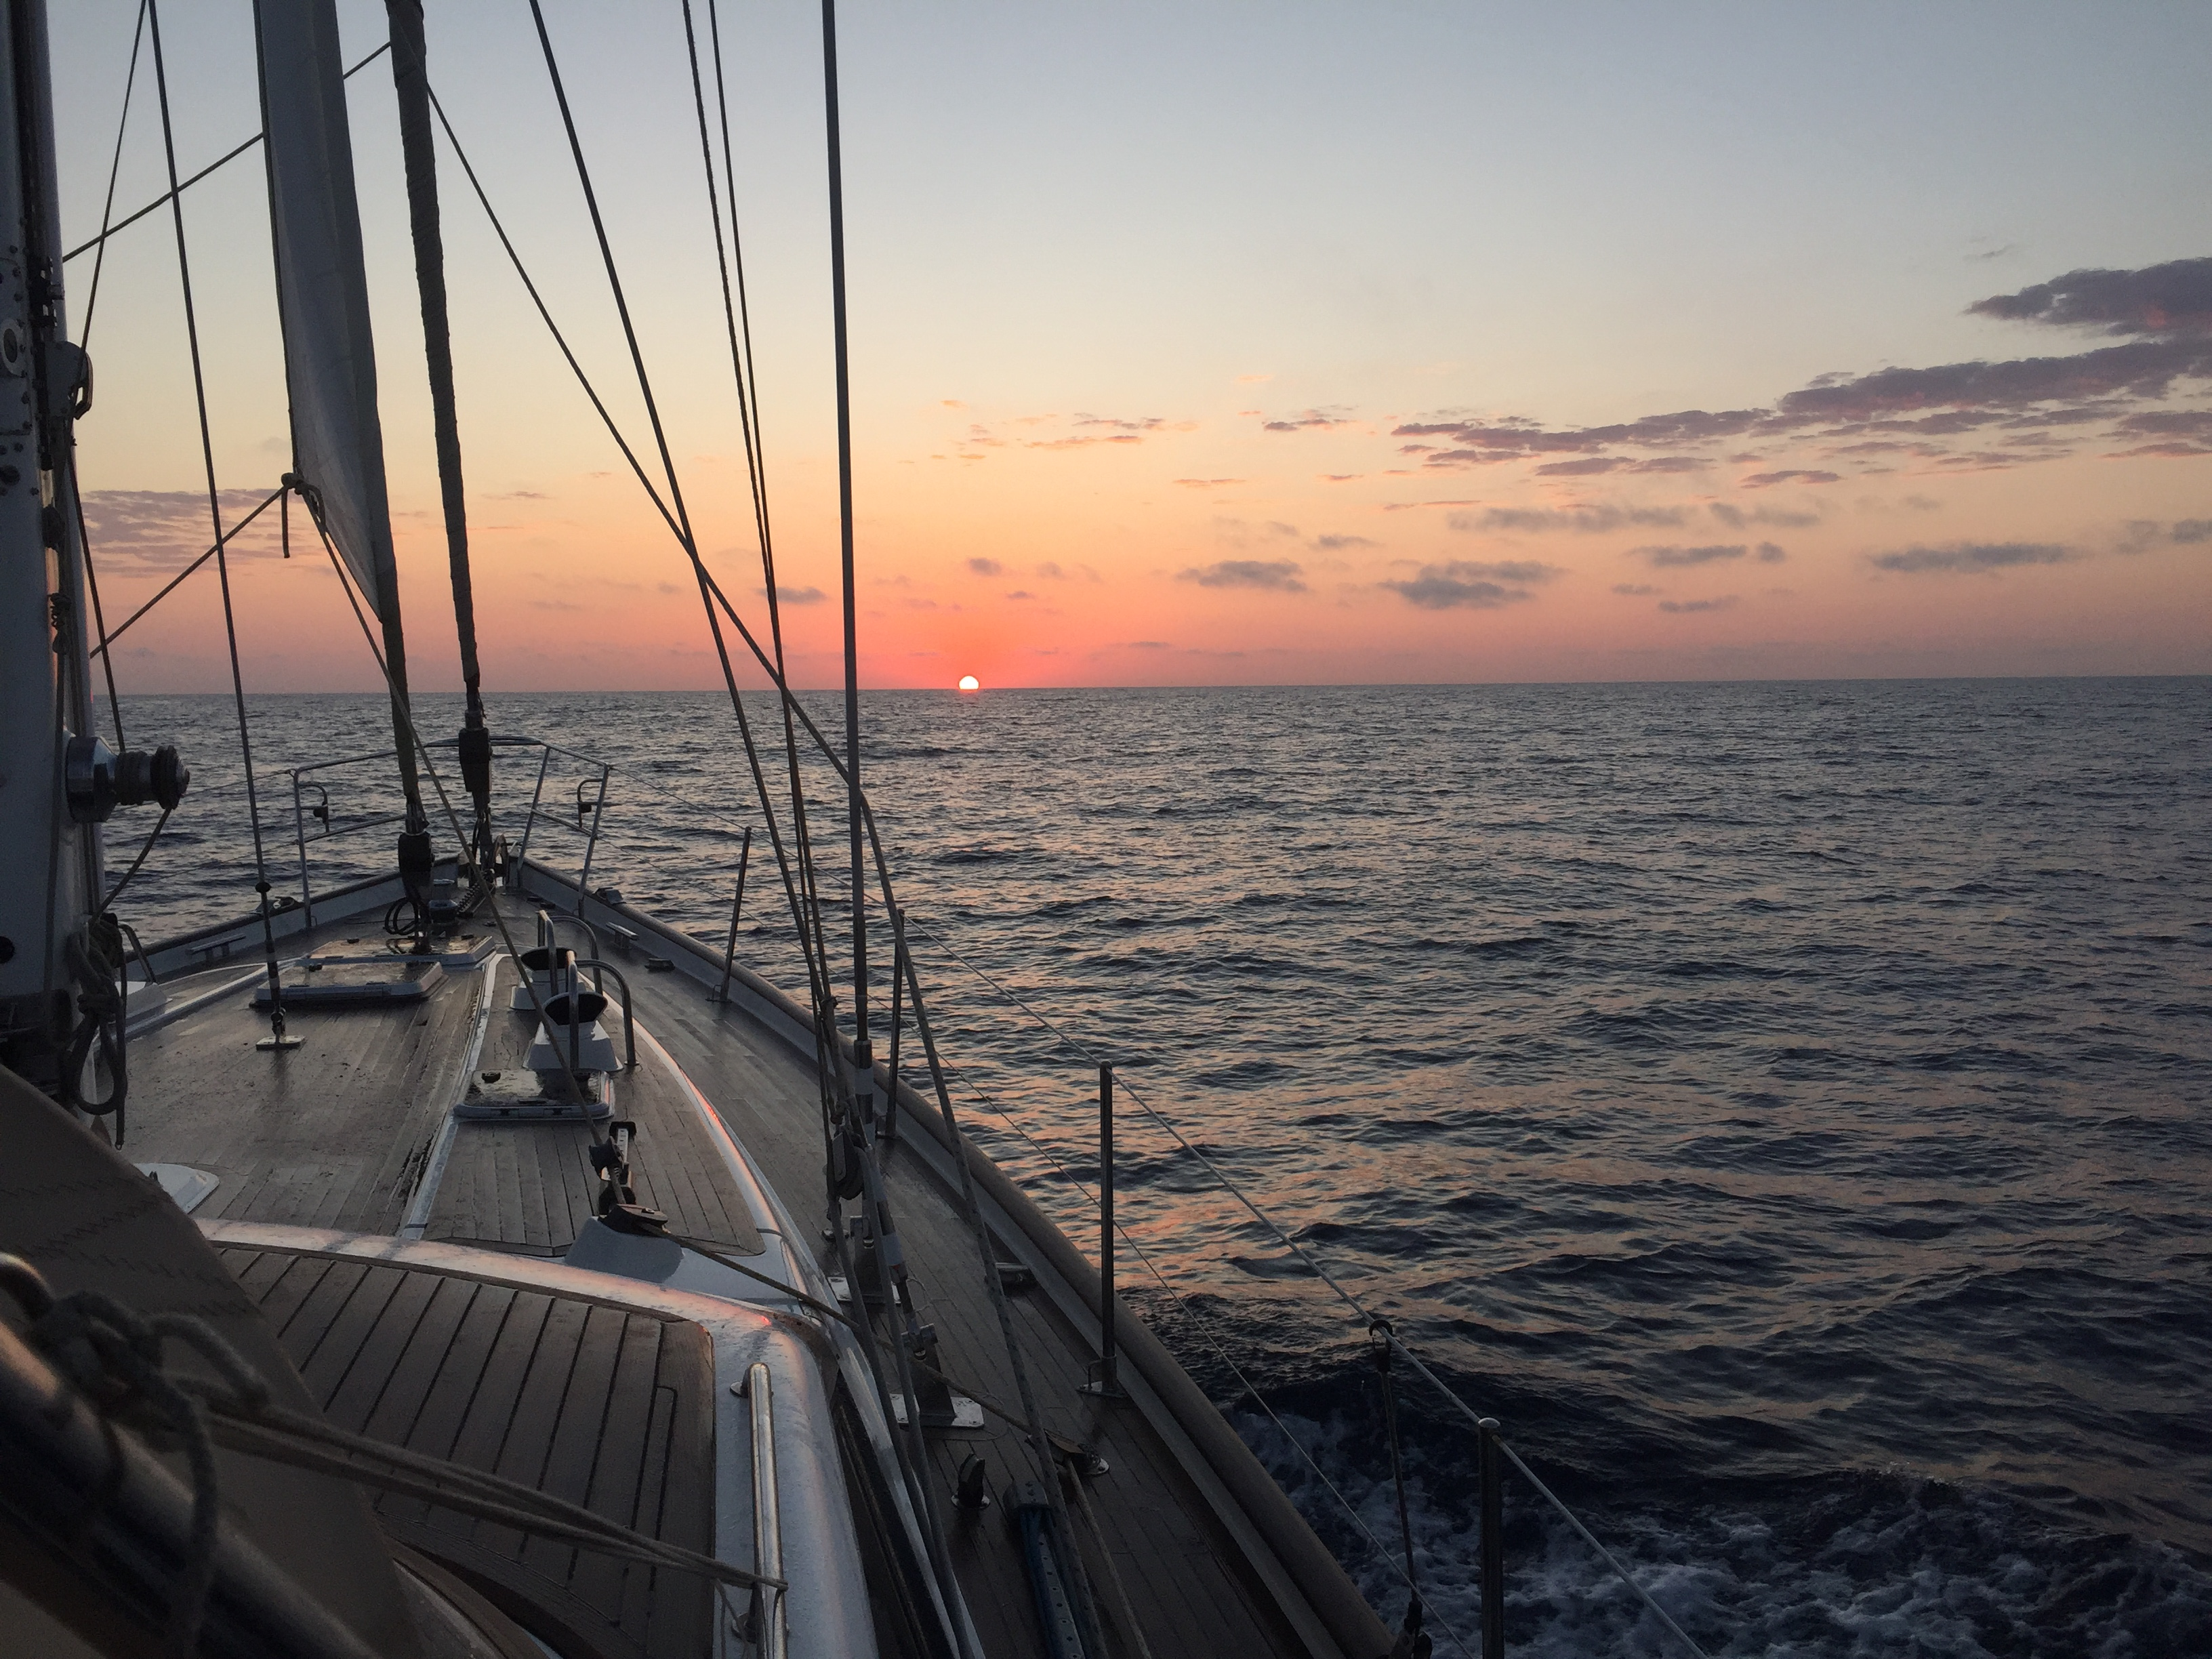 Sunrise on Passage to Corsica